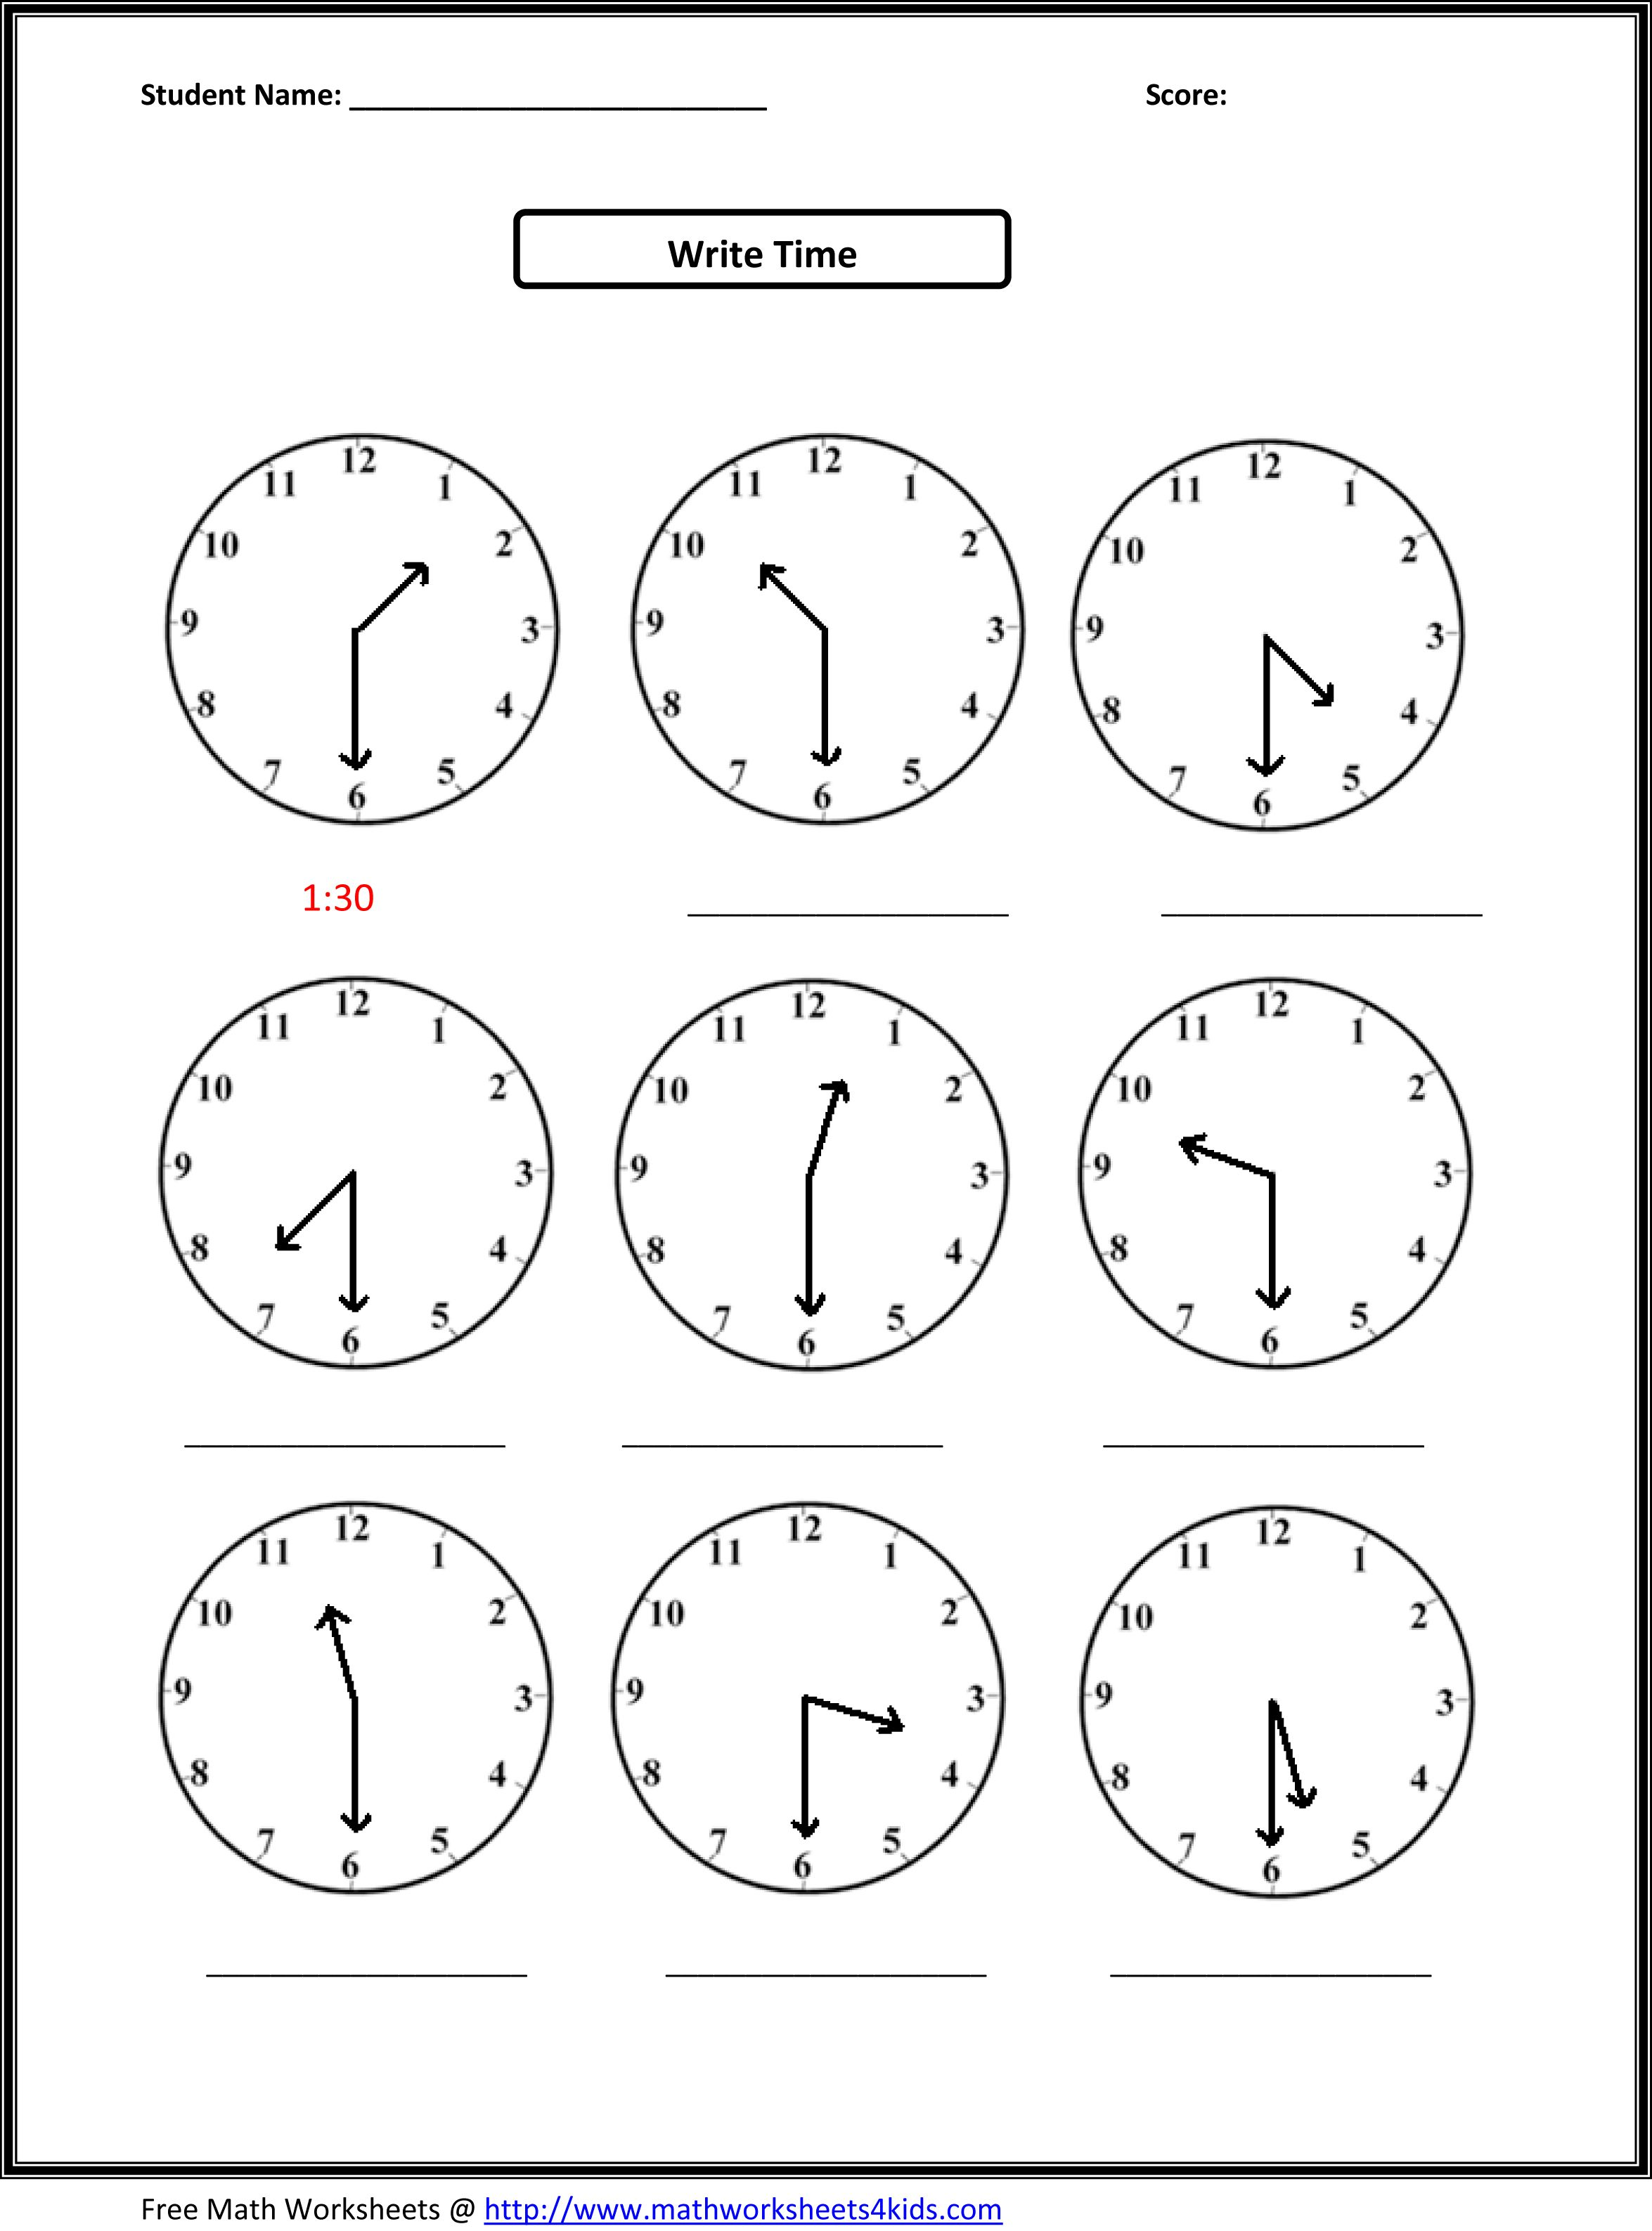 Proatmealus  Inspiring Worksheet On Time For Grade   Reocurent With Likable Free Printable Telling Time Worksheets Nd Grade  Reocurent With Enchanting Ch Phonics Worksheets Free Also Reading Comprehension For First Grade Worksheets In Addition Worksheets For Grade  English And Worksheet For Class  As Well As Adjective Worksheet Grade  Additionally Math Worksheets For Kindergarten Cut And Paste From Reocurentcom With Proatmealus  Likable Worksheet On Time For Grade   Reocurent With Enchanting Free Printable Telling Time Worksheets Nd Grade  Reocurent And Inspiring Ch Phonics Worksheets Free Also Reading Comprehension For First Grade Worksheets In Addition Worksheets For Grade  English From Reocurentcom